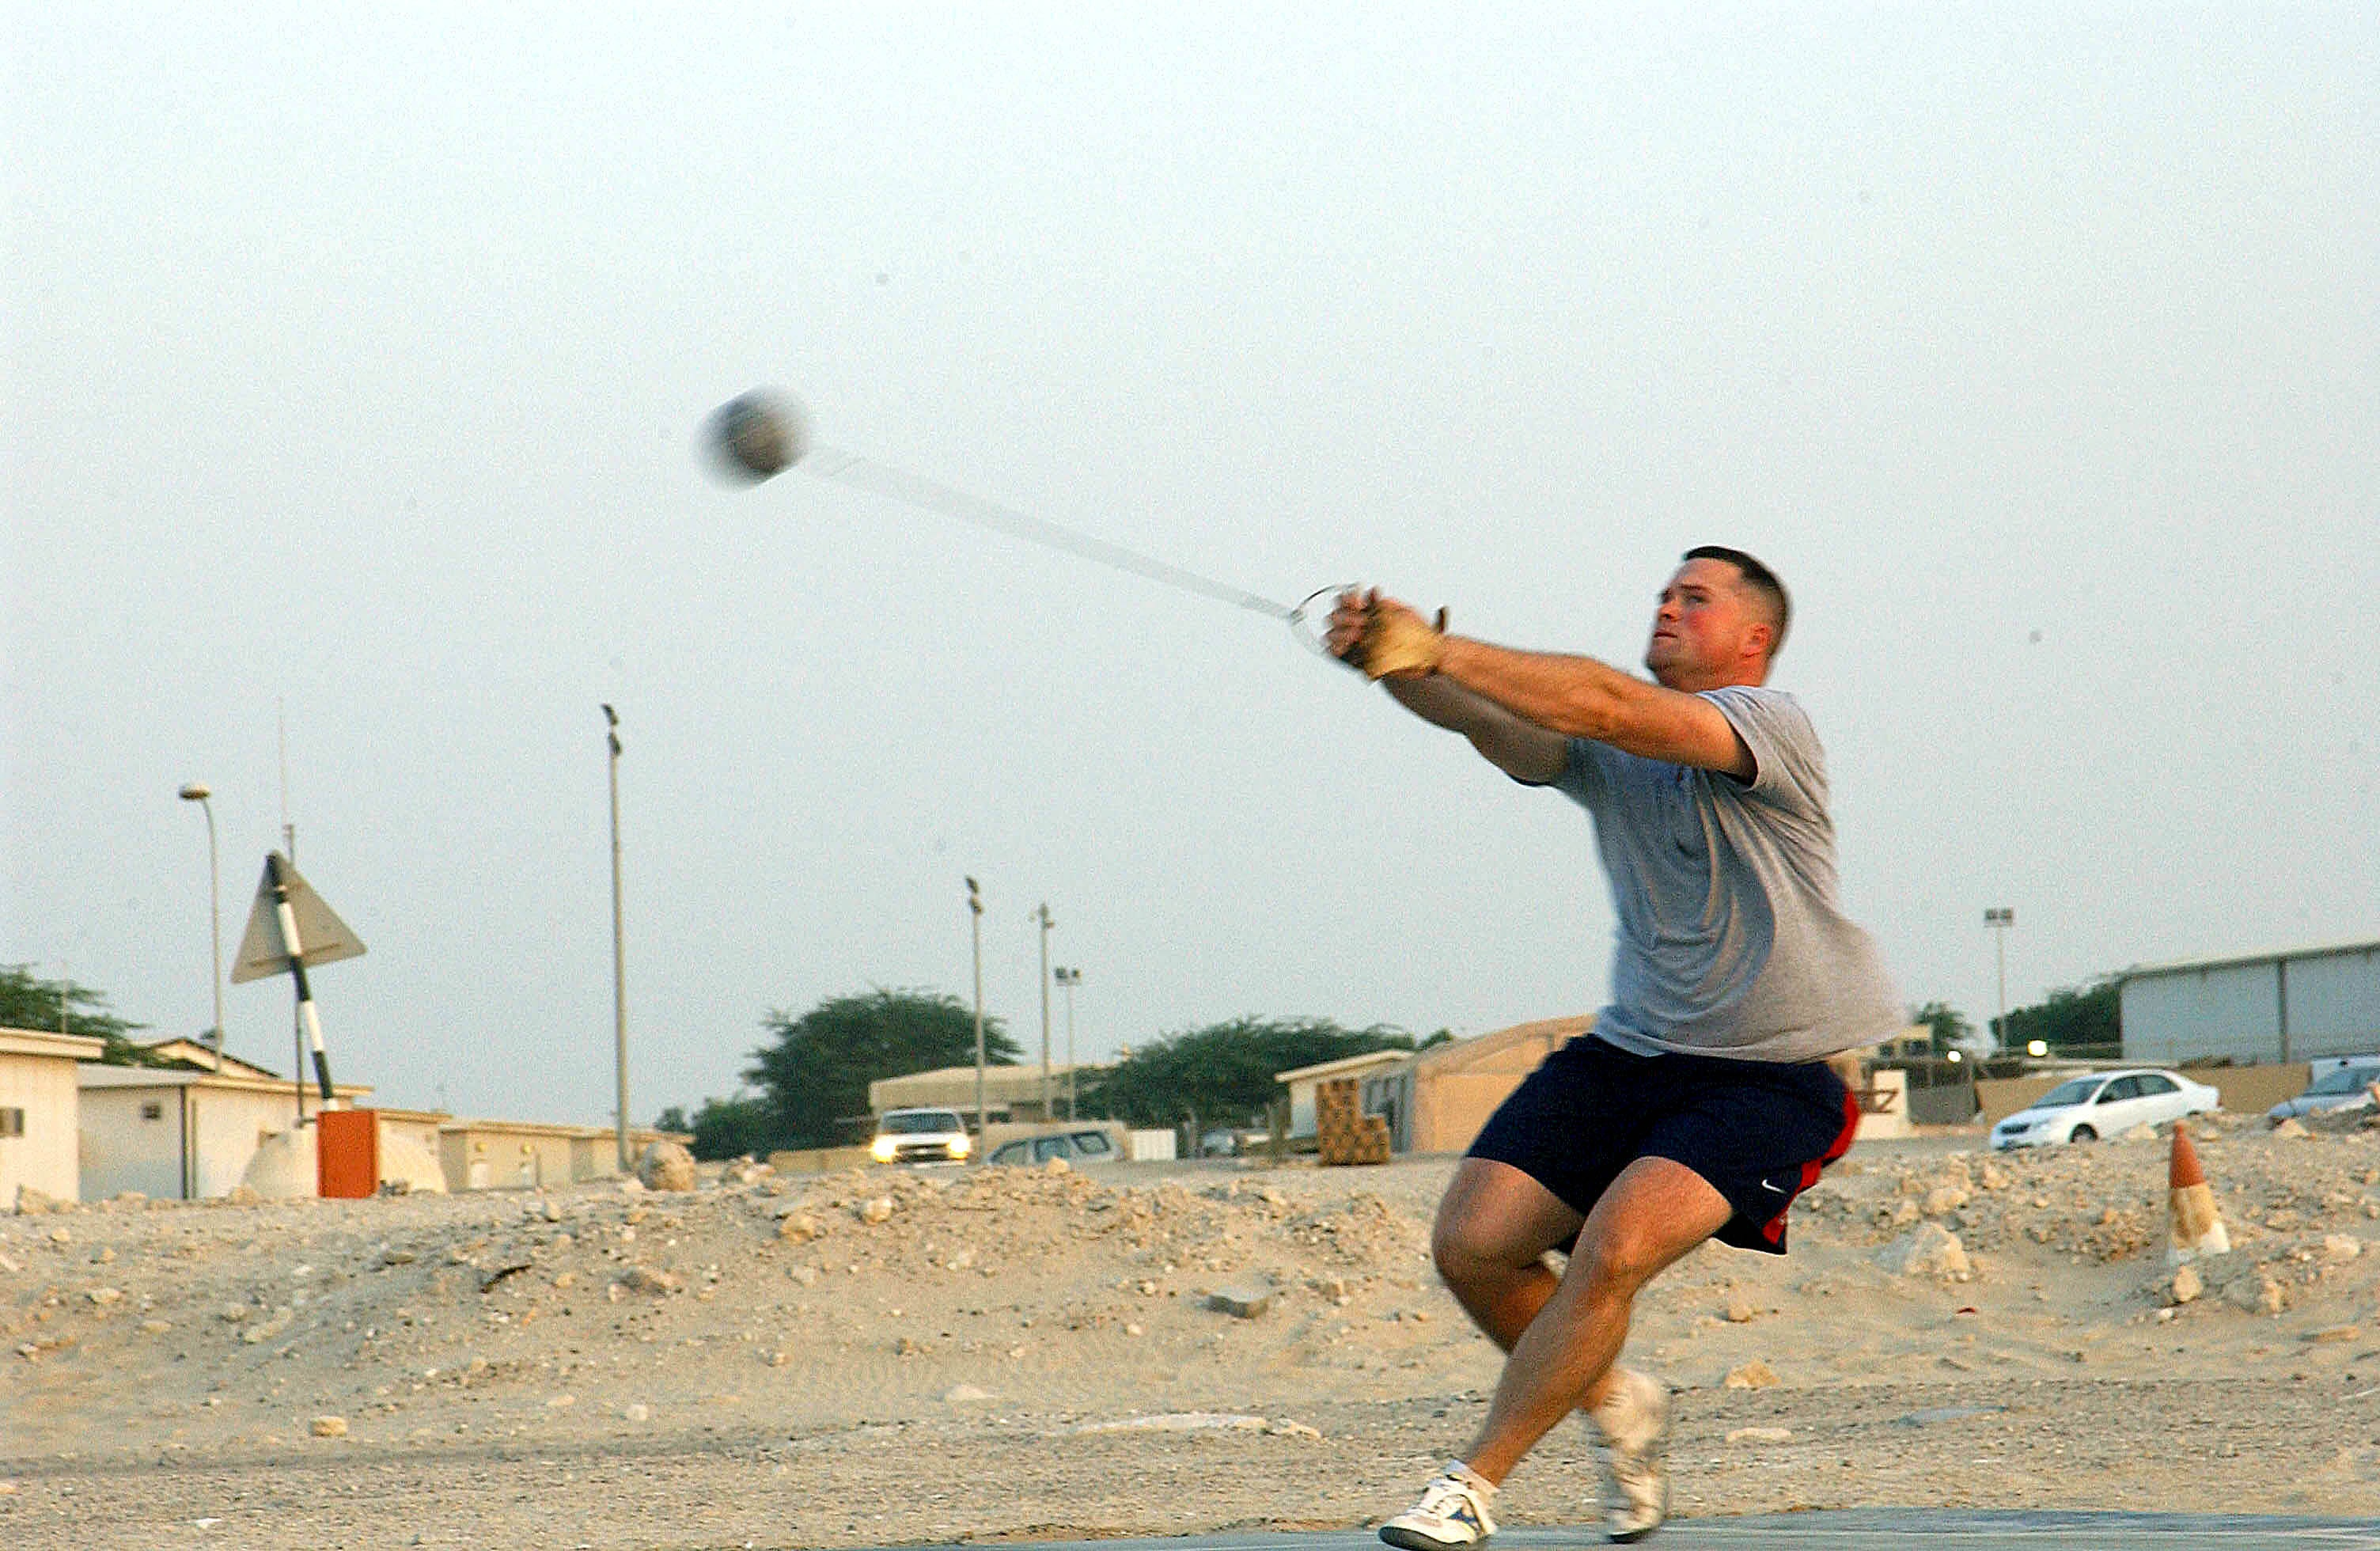 sport-field-action-training-launch-outdoors-1233396-pxhere.com